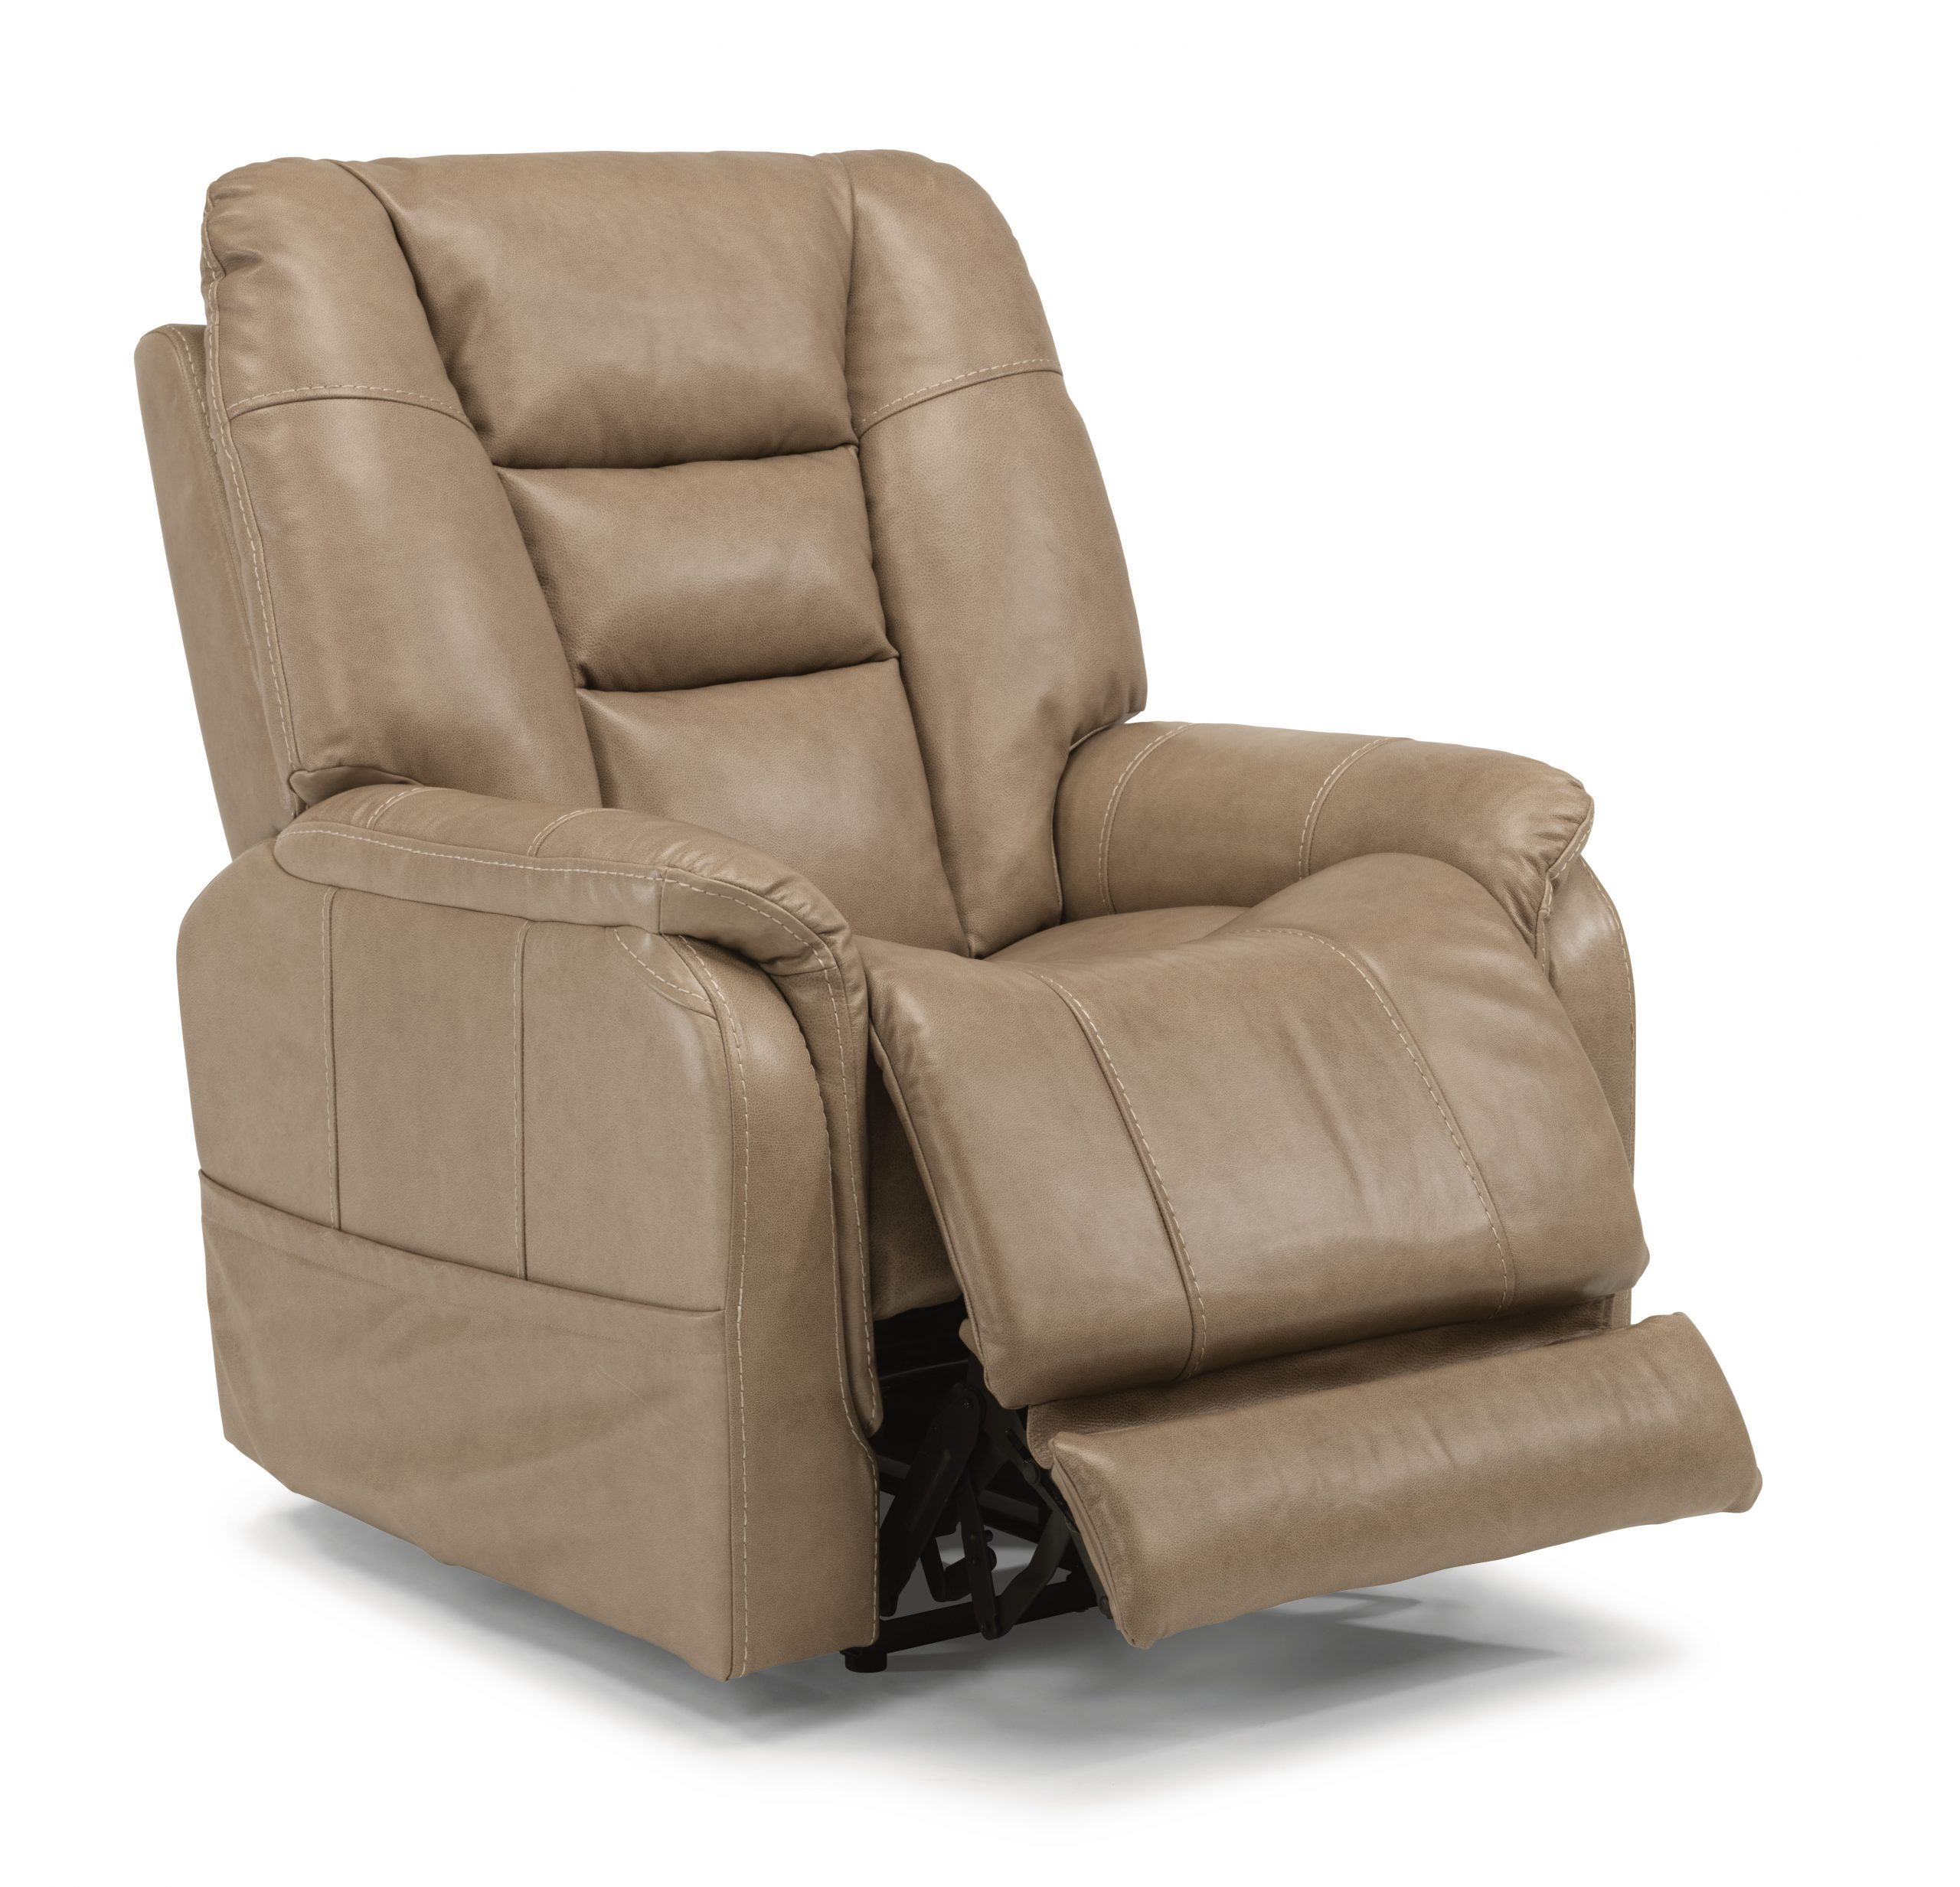 Flexsteel Theo Leather Big and Tall Power Recliner with Headrest and Lumbar (Recliners)